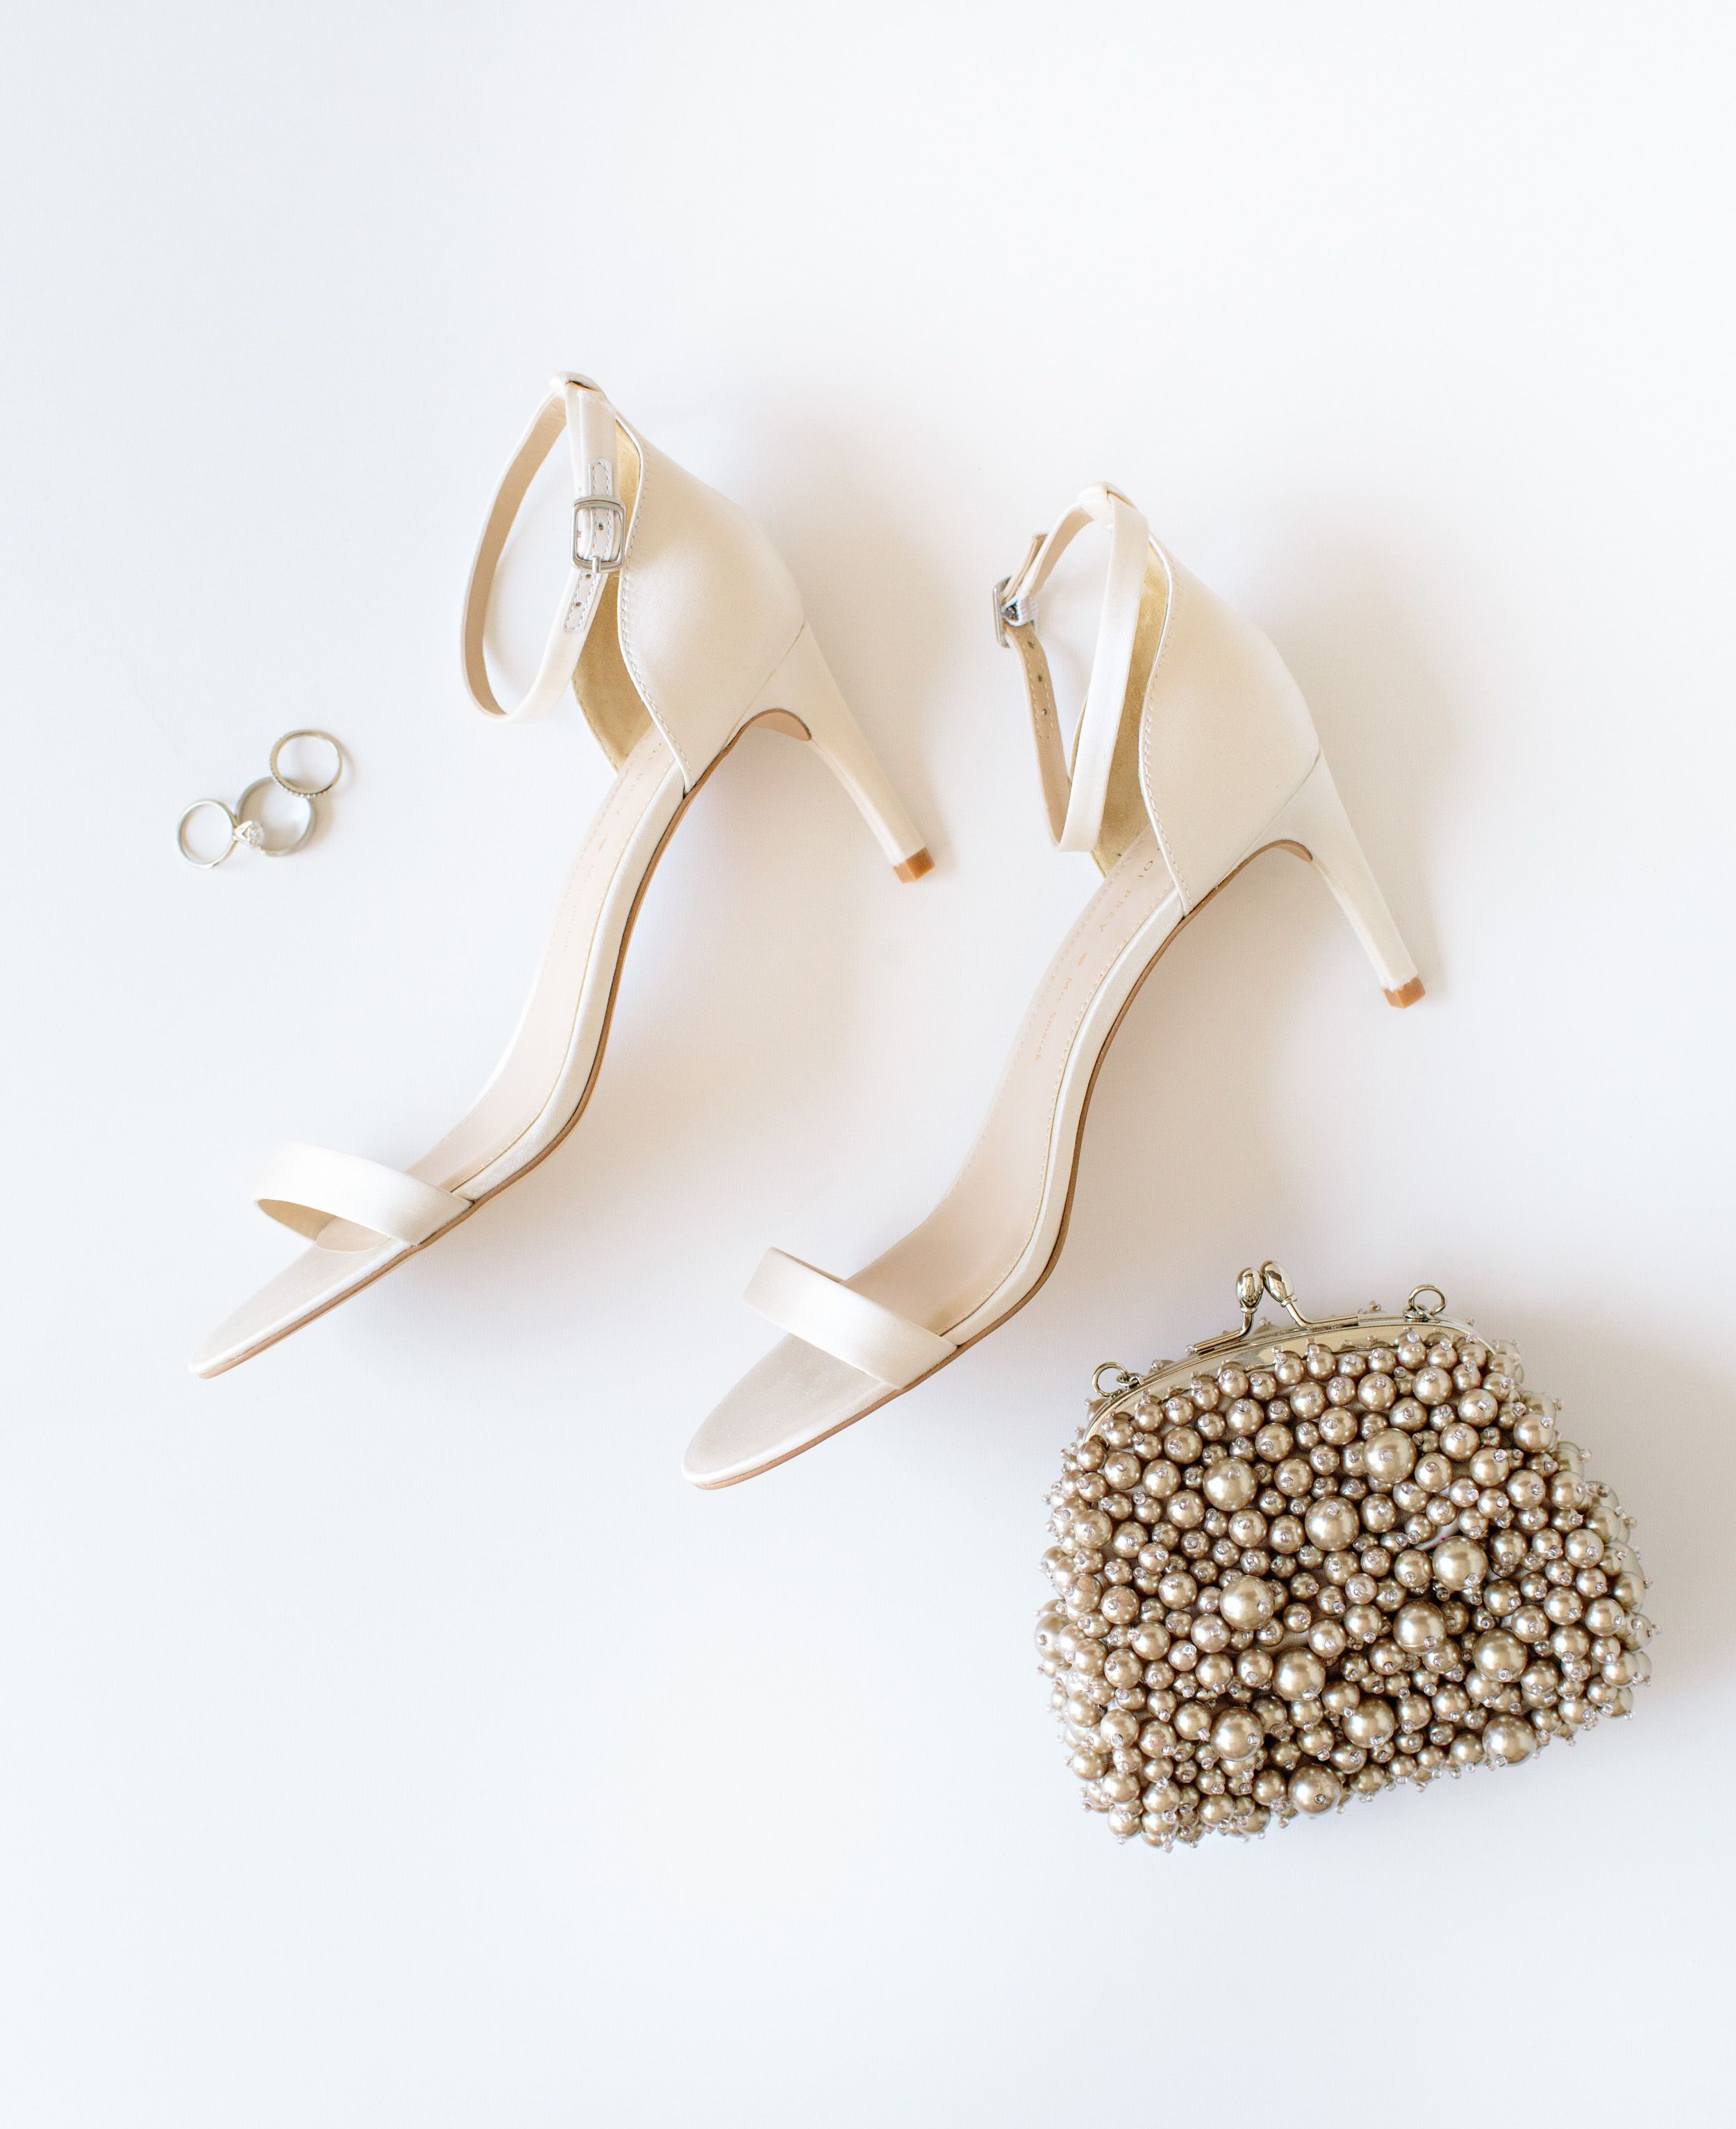 bridal shoes, rings and purse